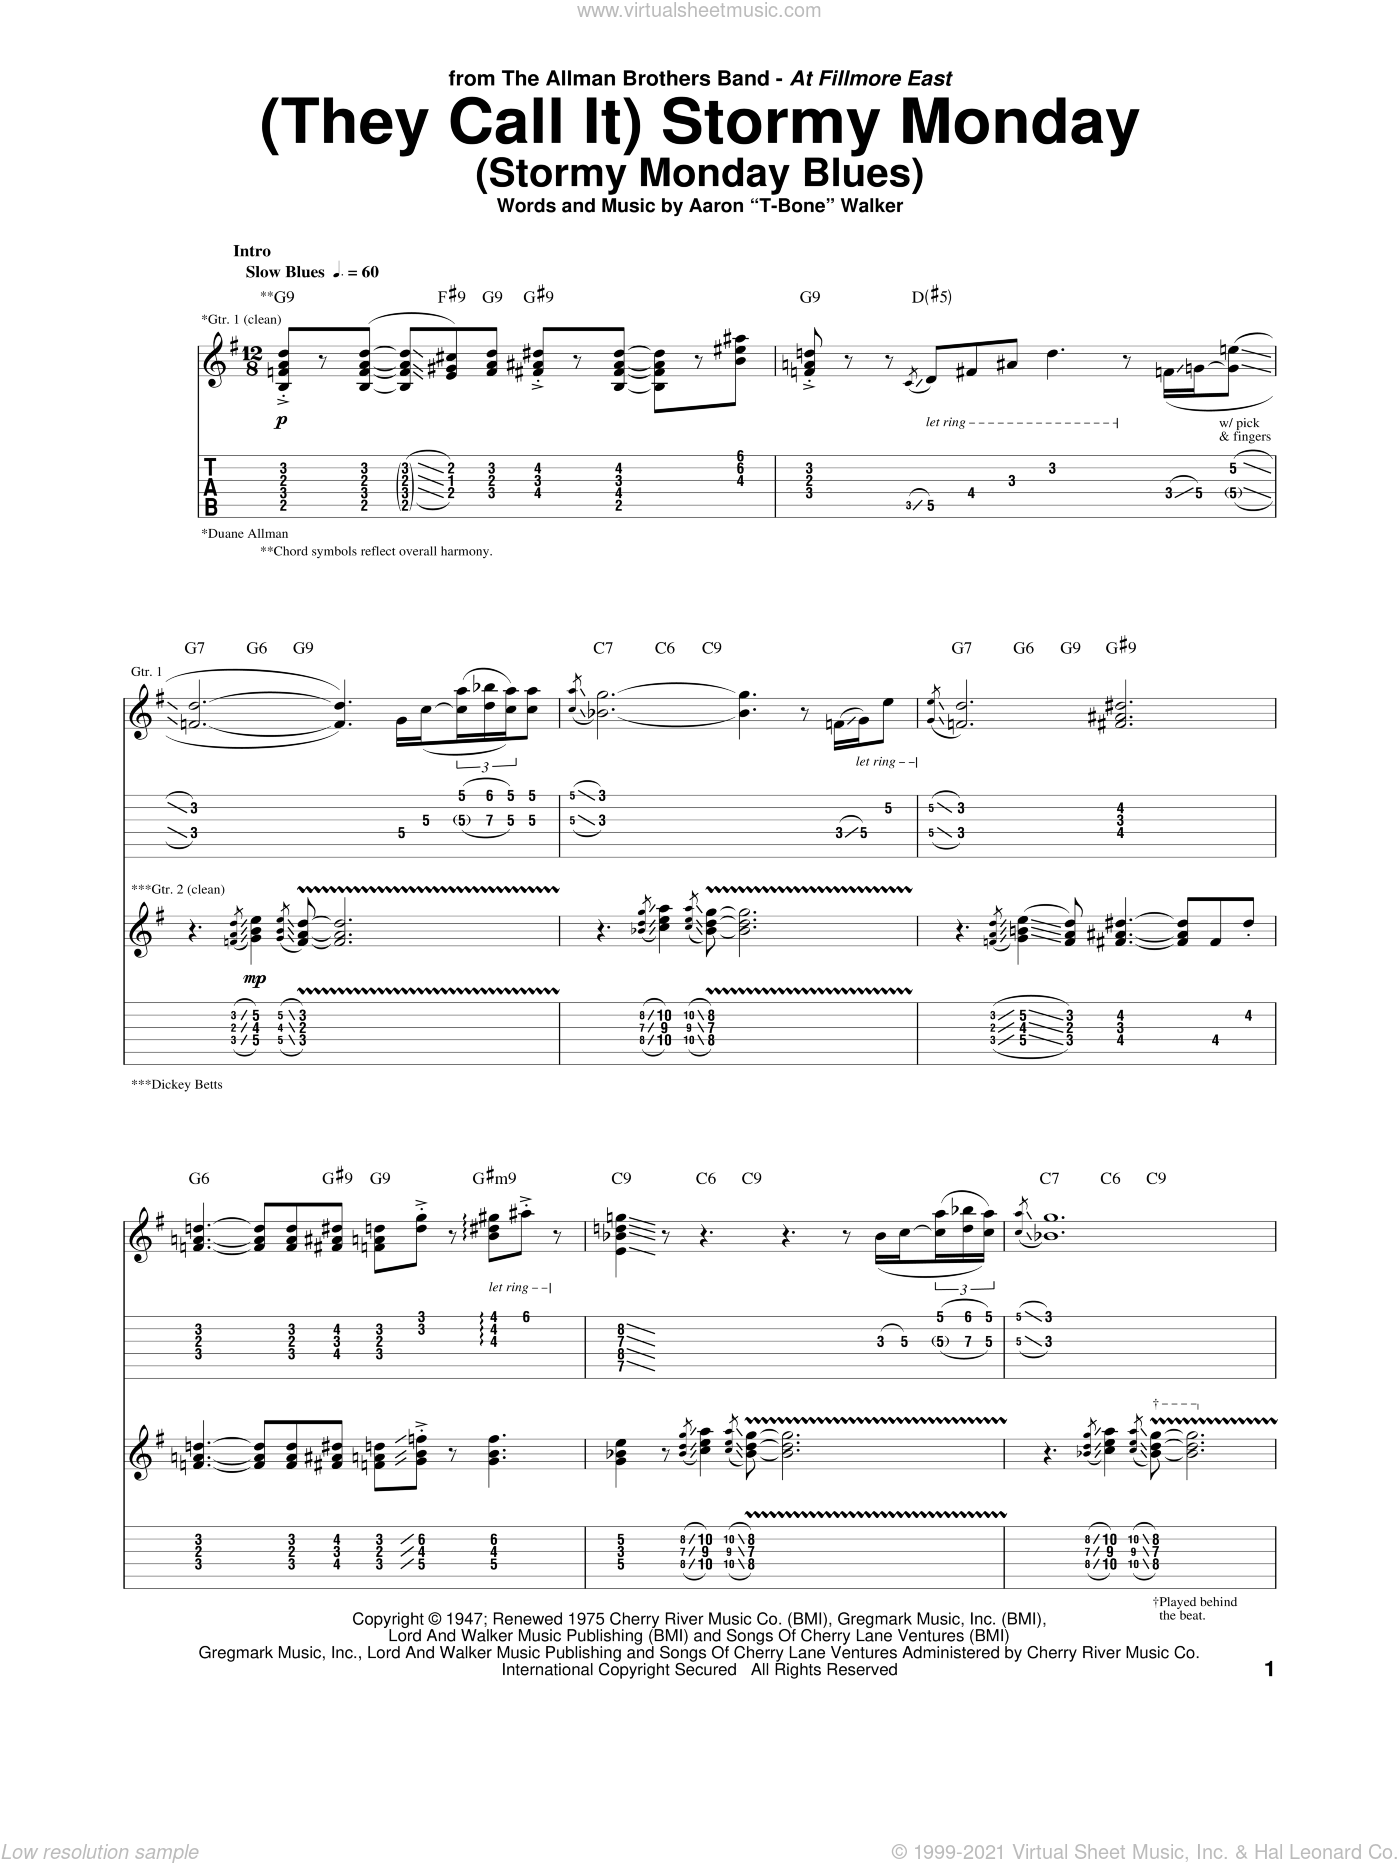 (They Call It) Stormy Monday (Stormy Monday Blues) sheet music for guitar (tablature) by Allman Brothers Band, The Allman Brothers Band and Aaron